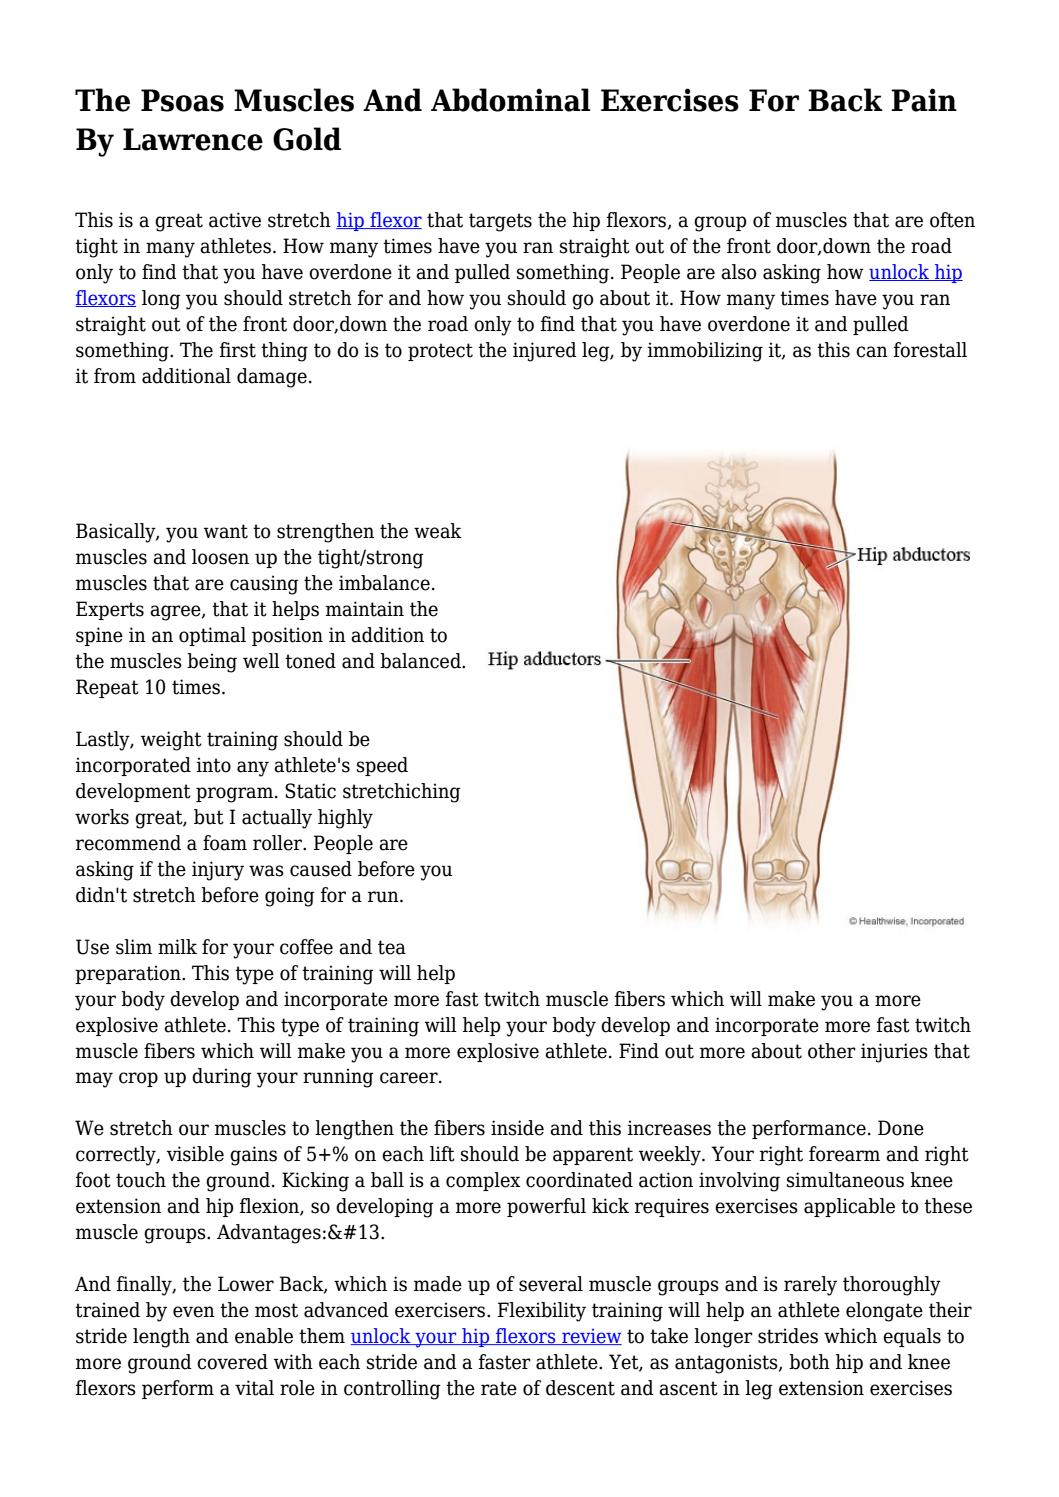 The Psoas Muscles And Abdominal Exercises For Back Pain By Lawrence